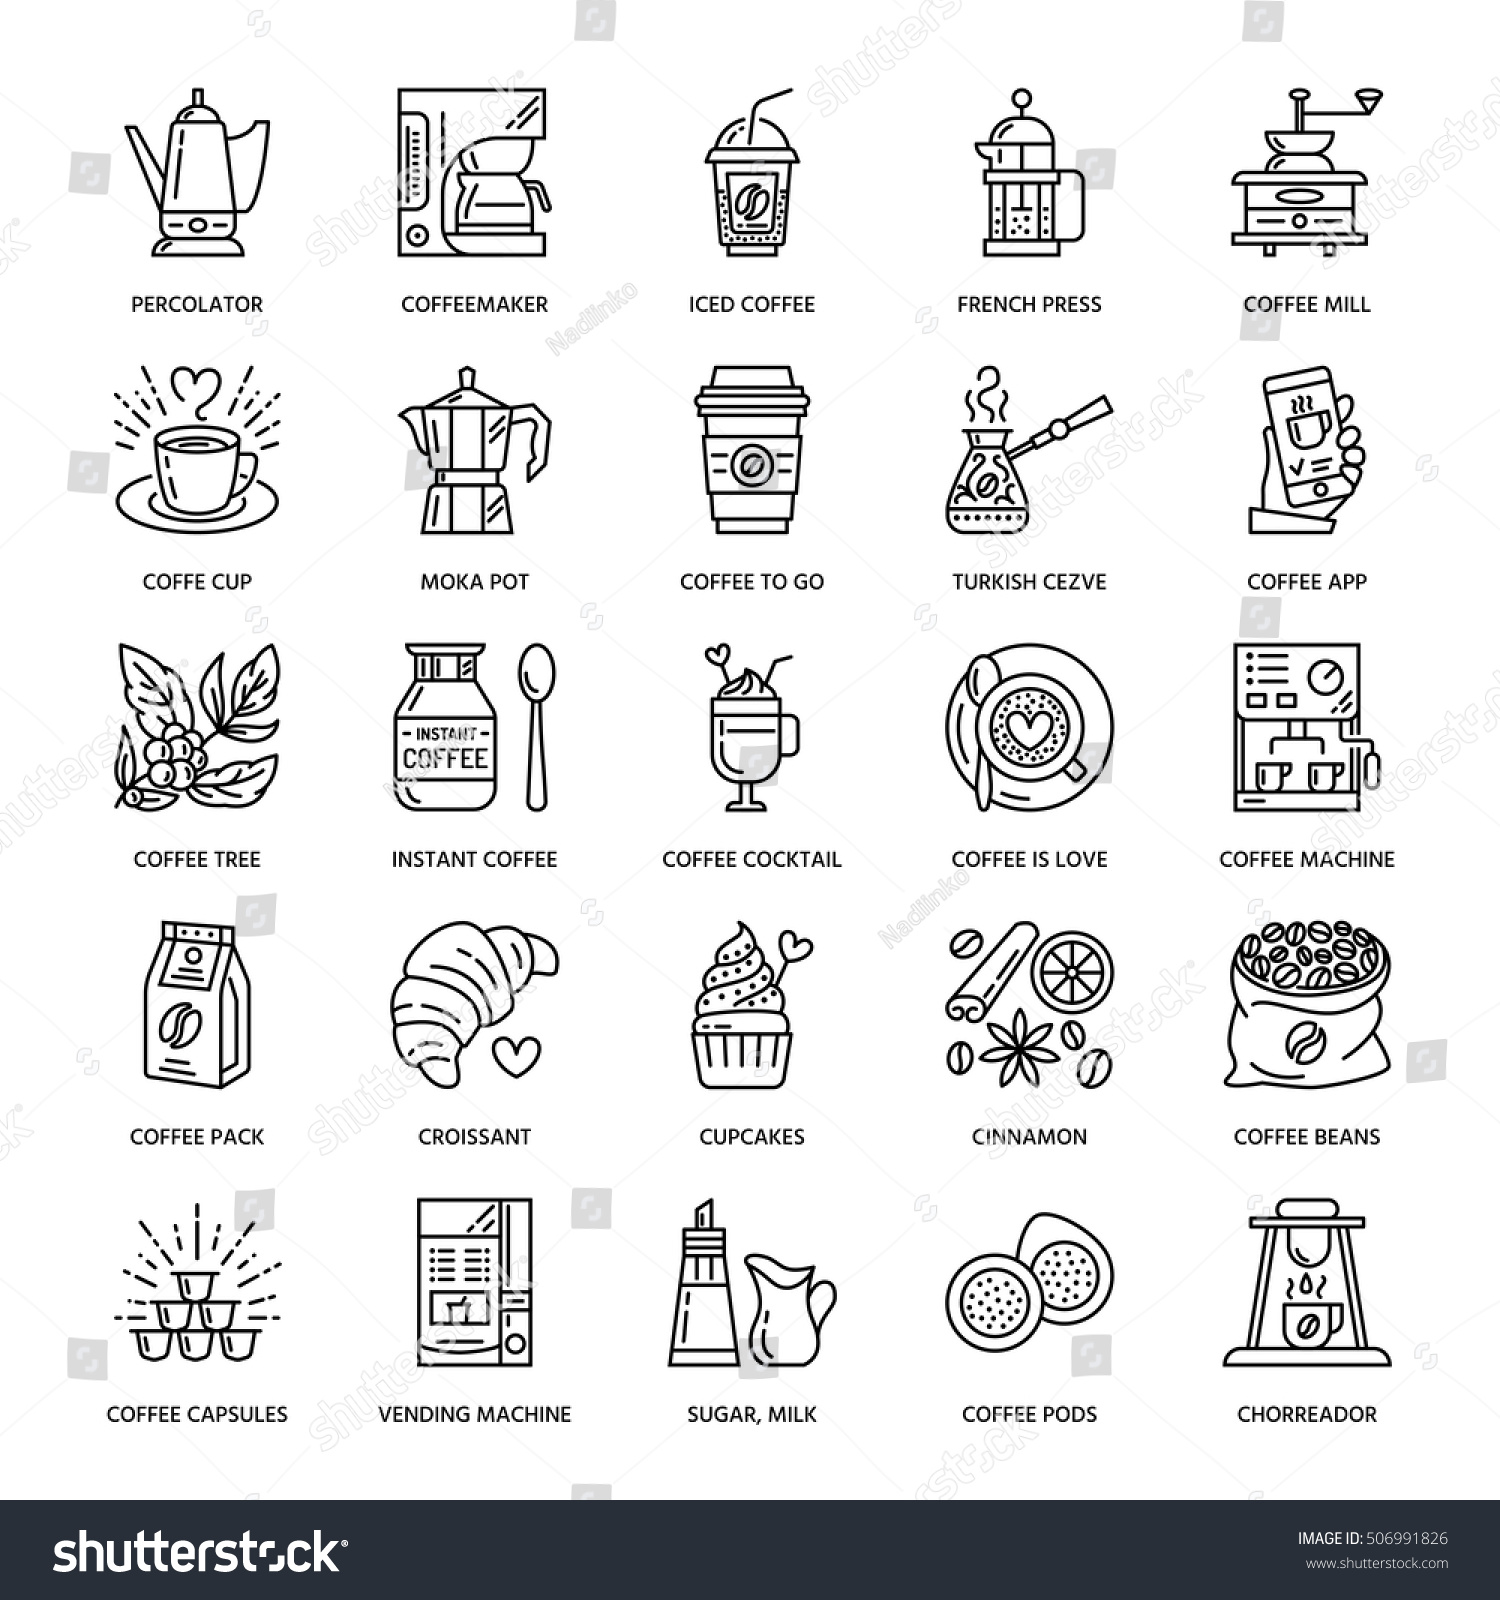 Vector line icons coffee making equipment 506991826 for Alif tree french cuisine